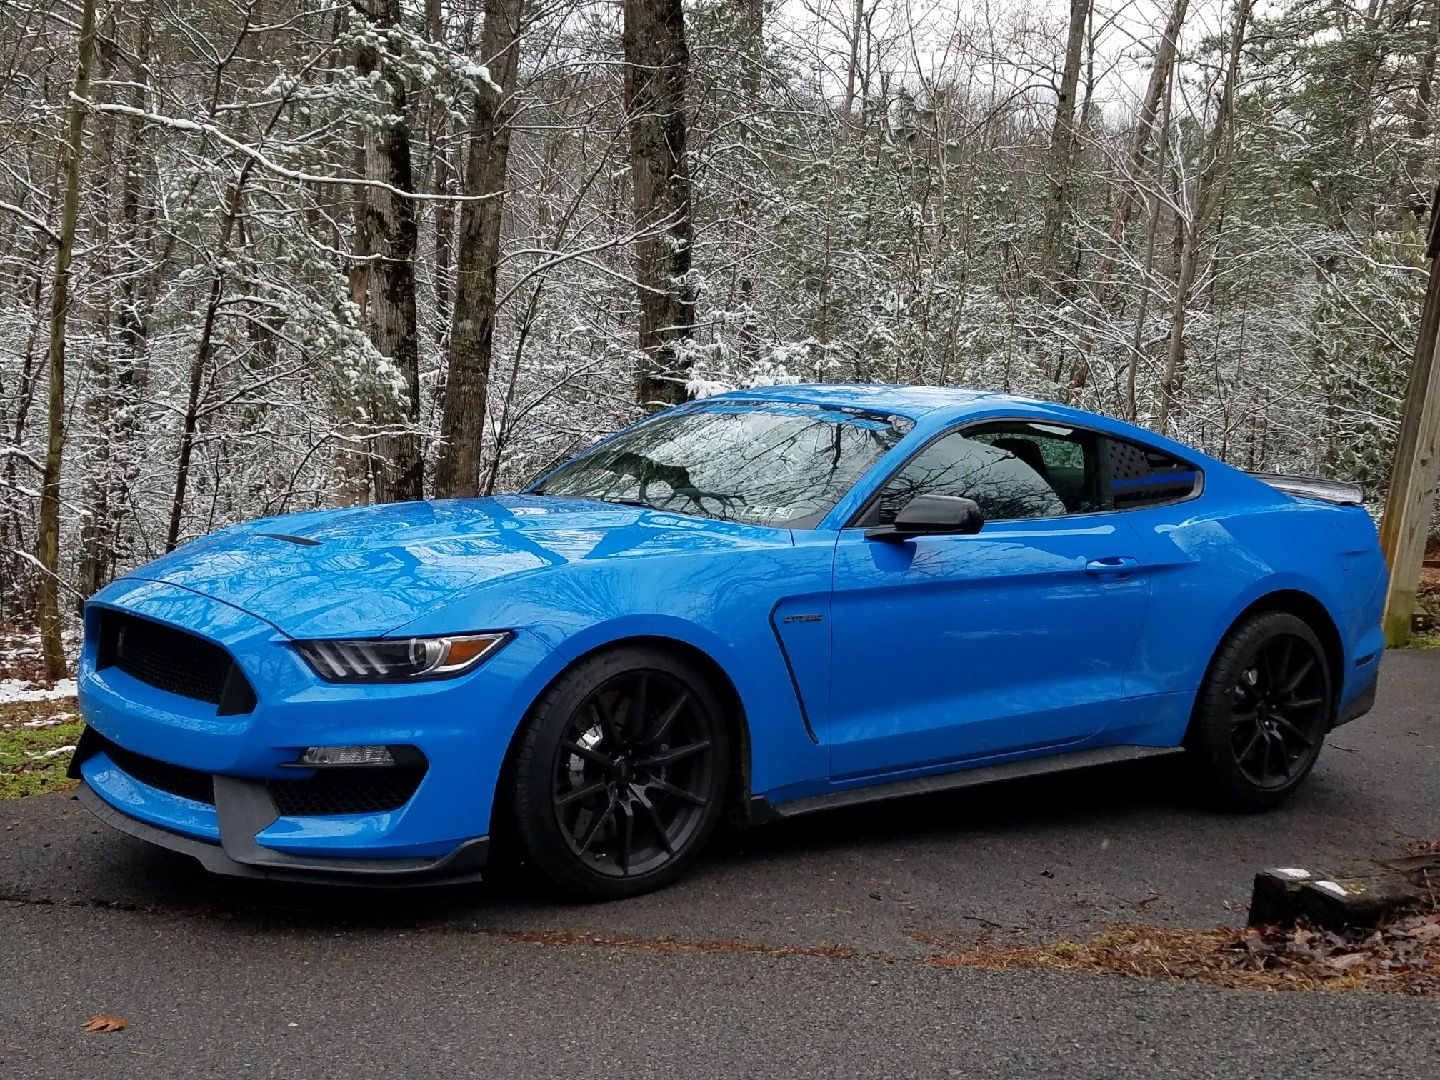 "<img src=""IMG_6218.jpg"" alt=""A Shelby GT350 Ford Mustang"">"